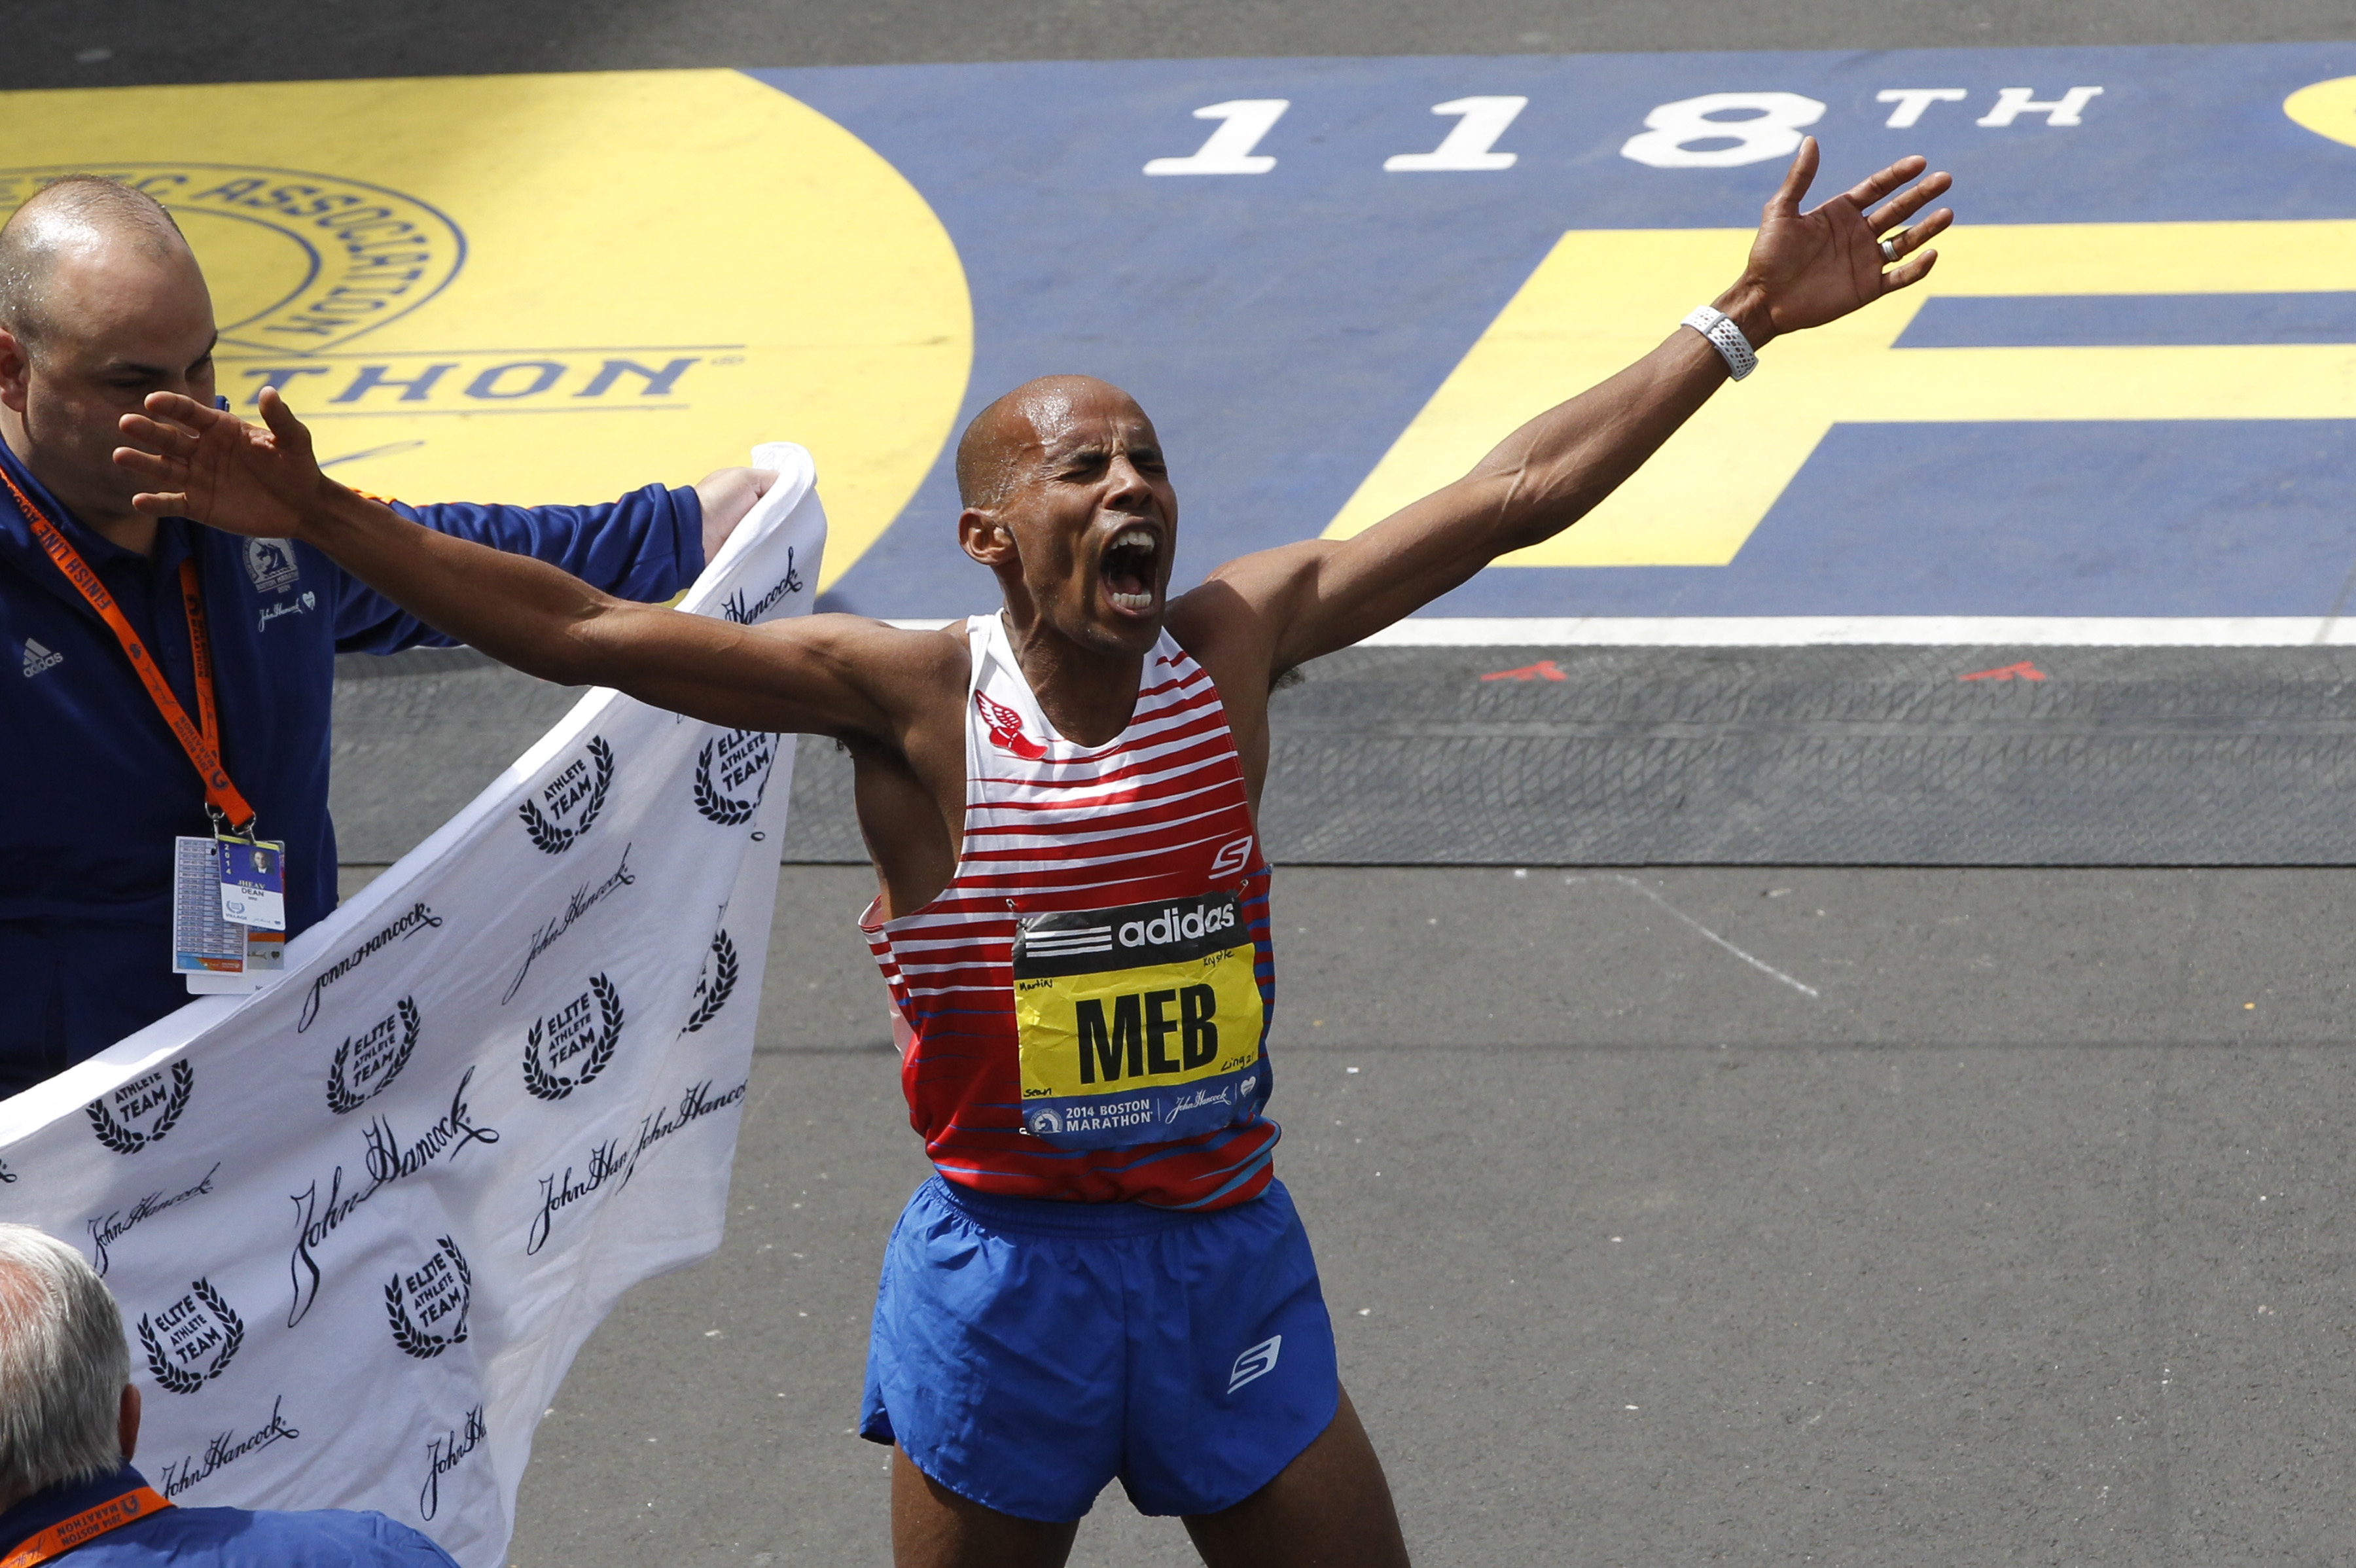 Meb Keflezighi of the U.S. reacts after he won the men's race of the Boston Marathon on Monday. Keflezighi became the first American man to win the marathon in more than 30 years.